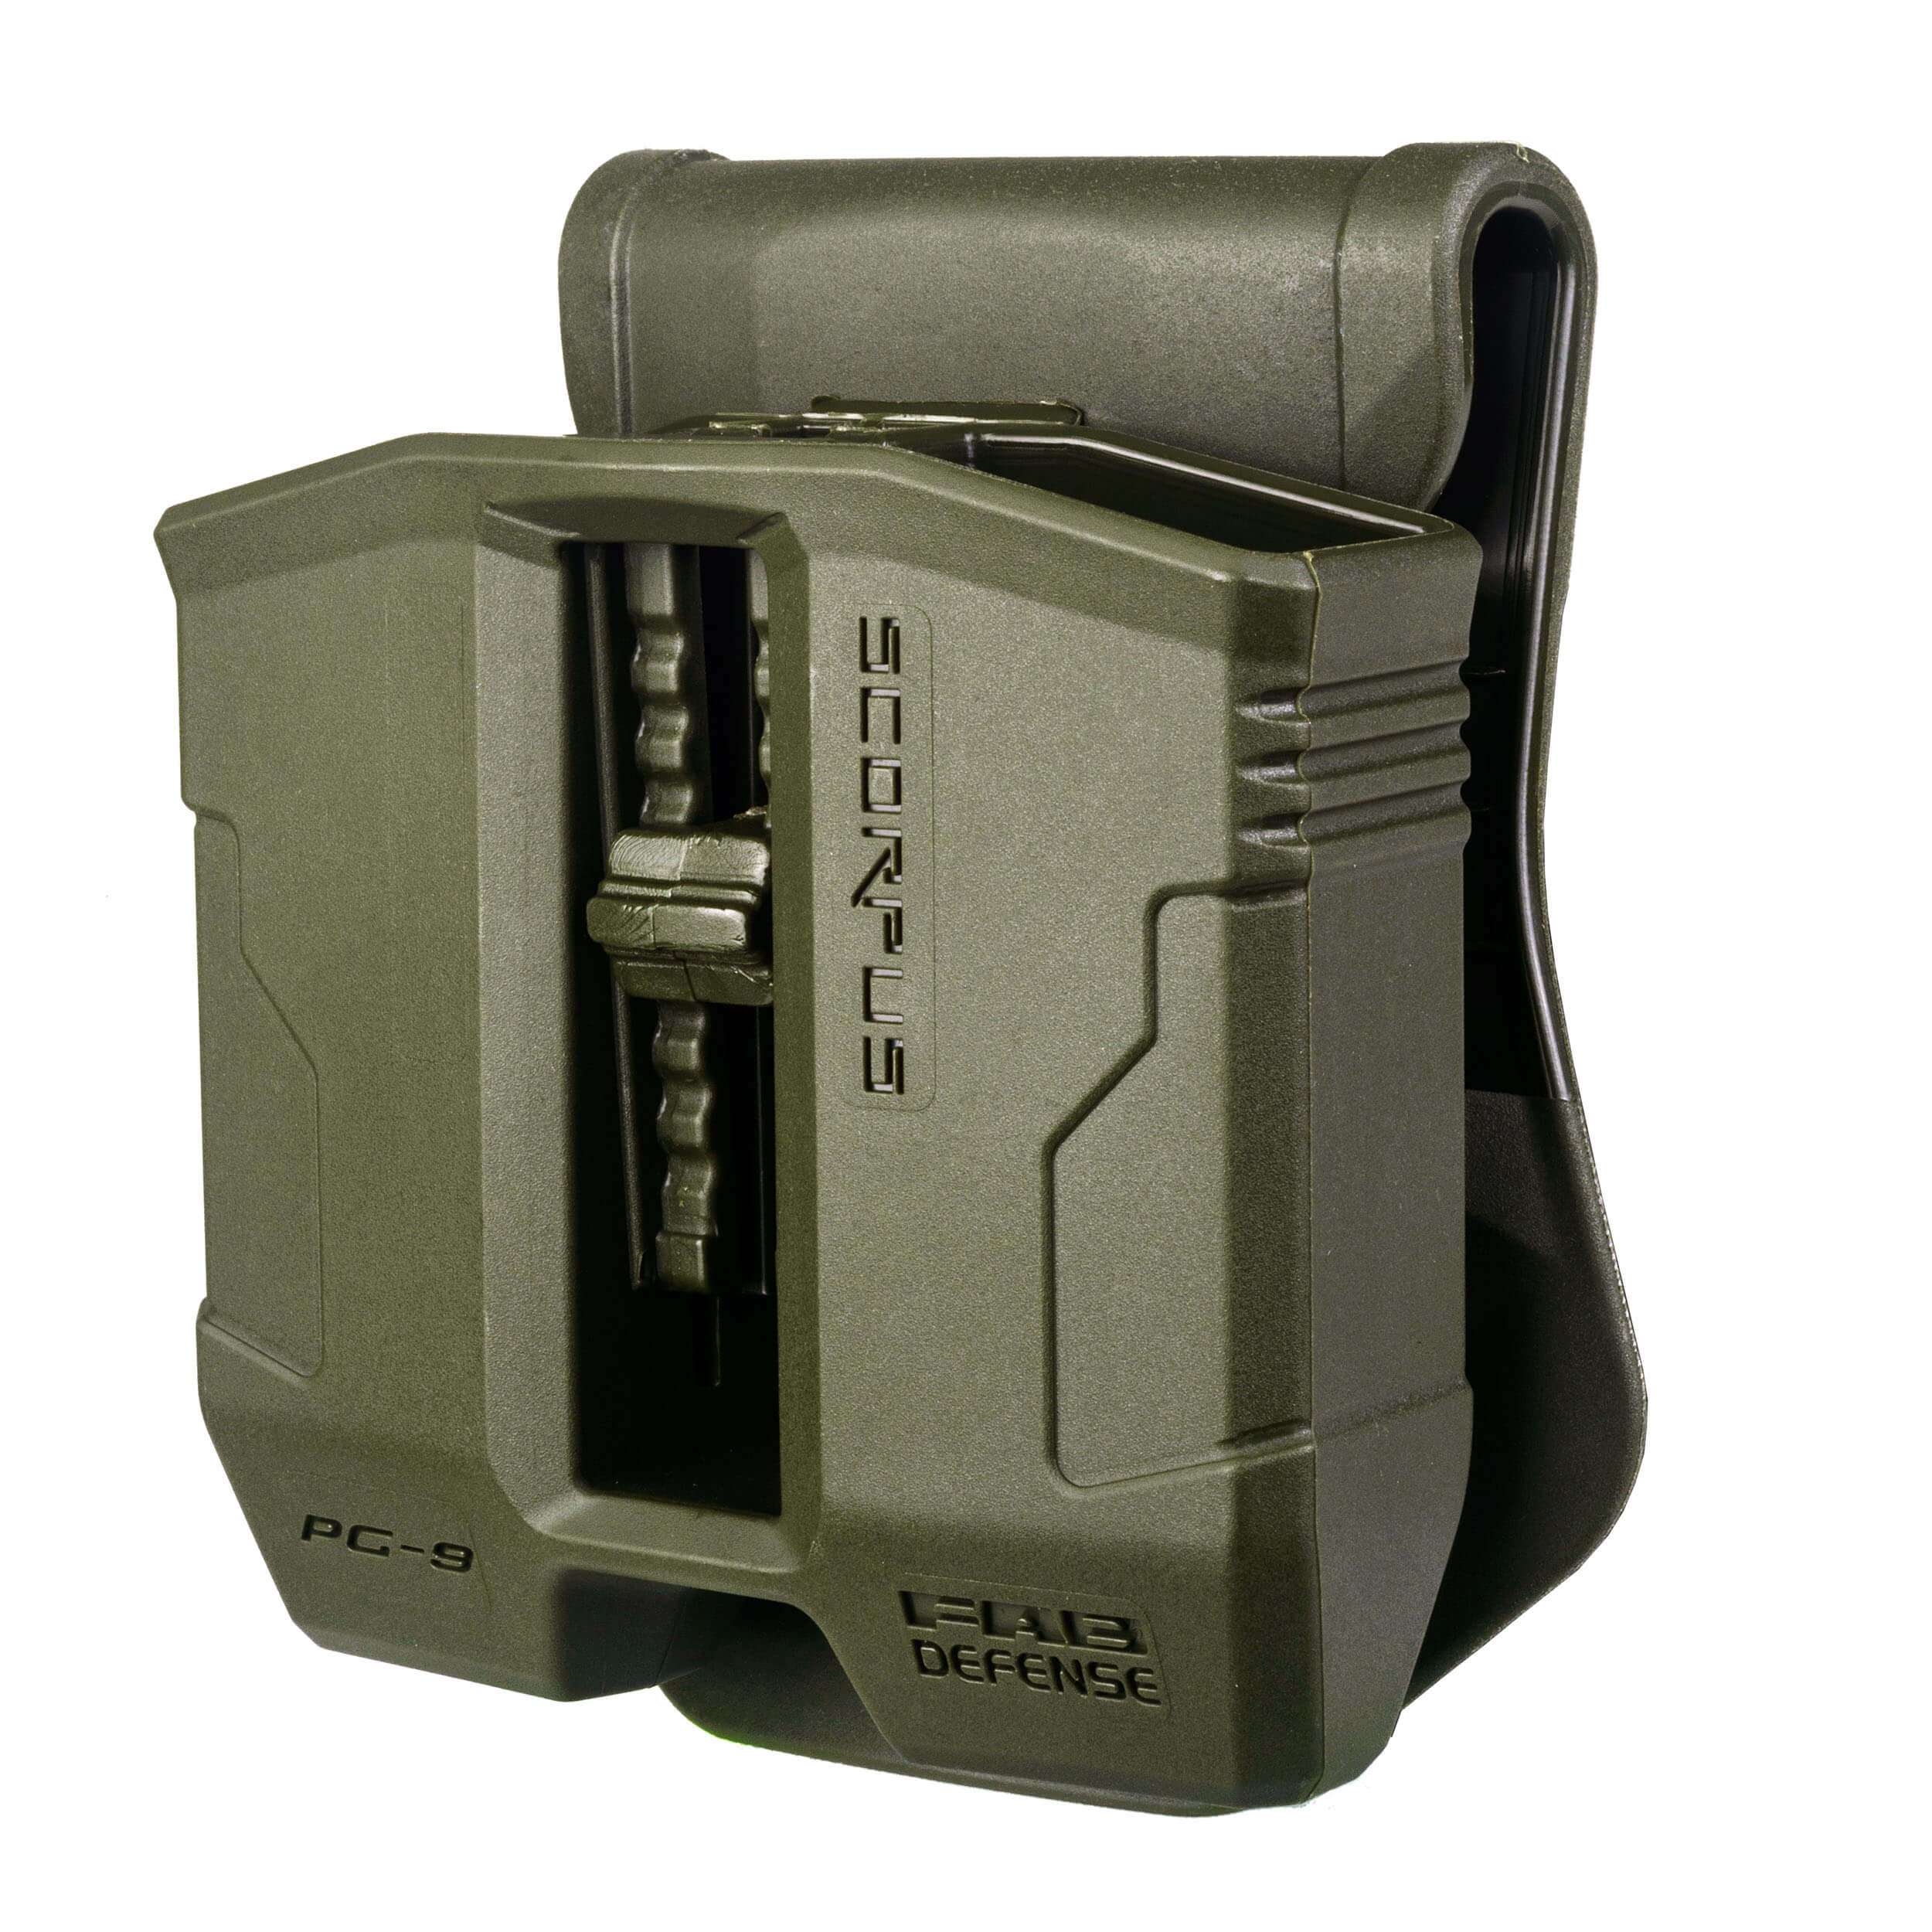 Double Magazine Pouch 360° for Glock 17, 19, 22, 23, 25, 26, 27, 31, 32, 33, 34, 35, 37, 38, 39